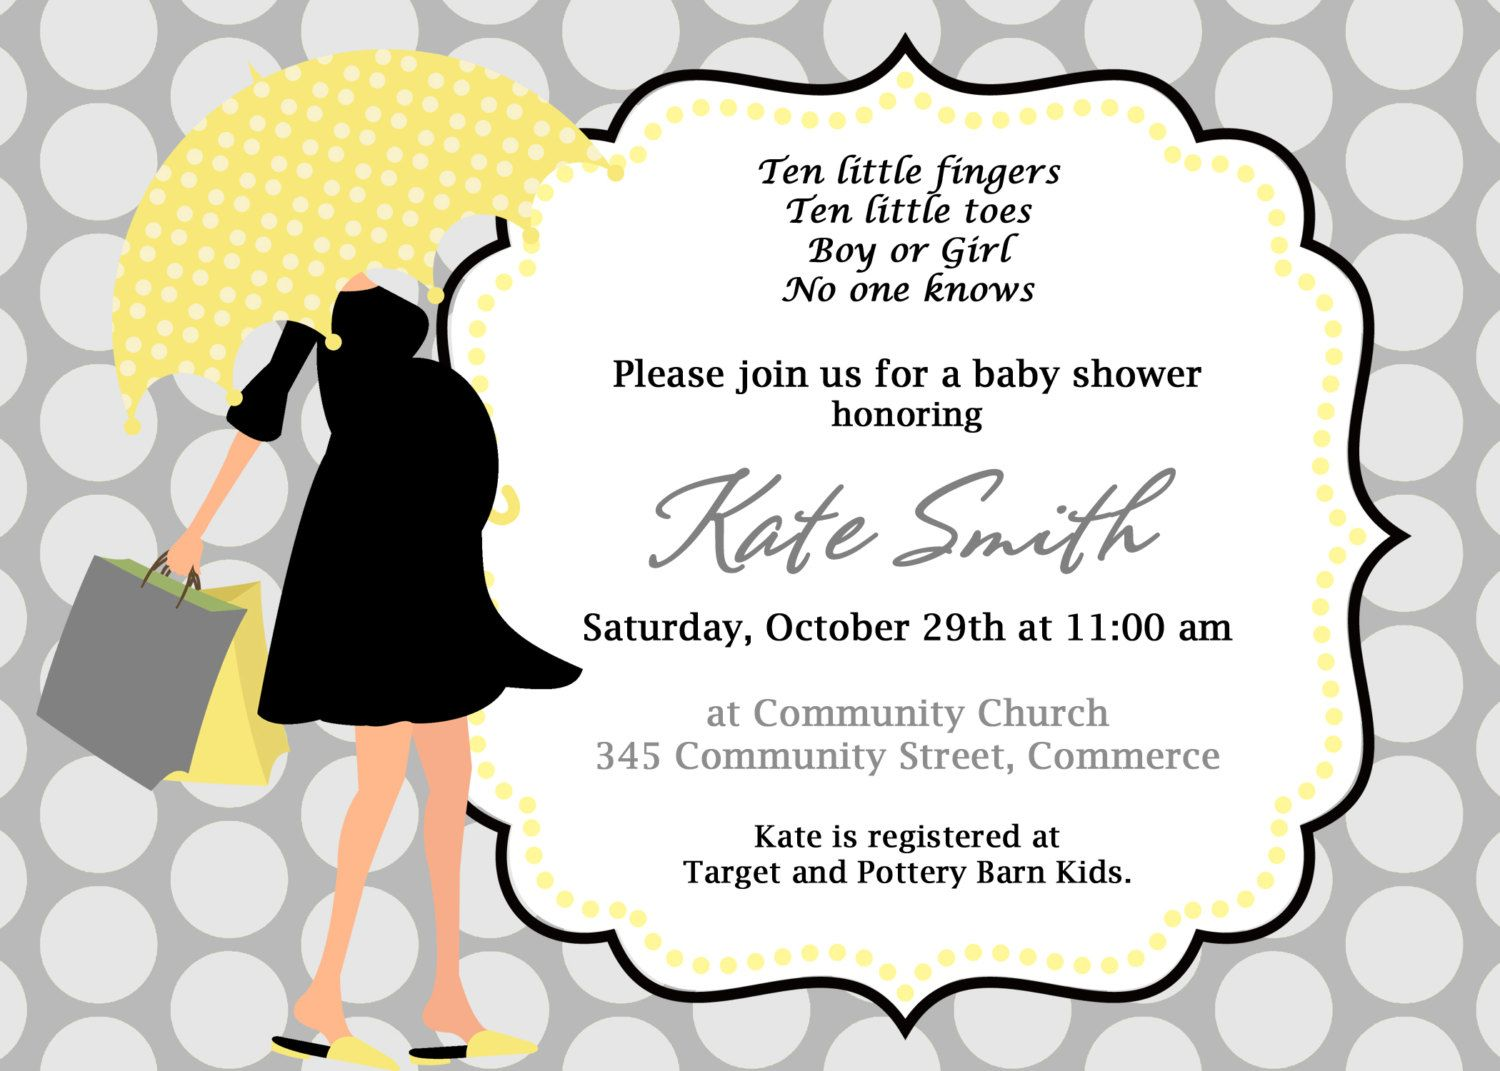 Printable modern mom baby shower invitation by cohenlane on etsy baby shower invitation umbrella invitation modern mom invite baby shower invitation umbrella baby shower invitation digital invite filmwisefo Images